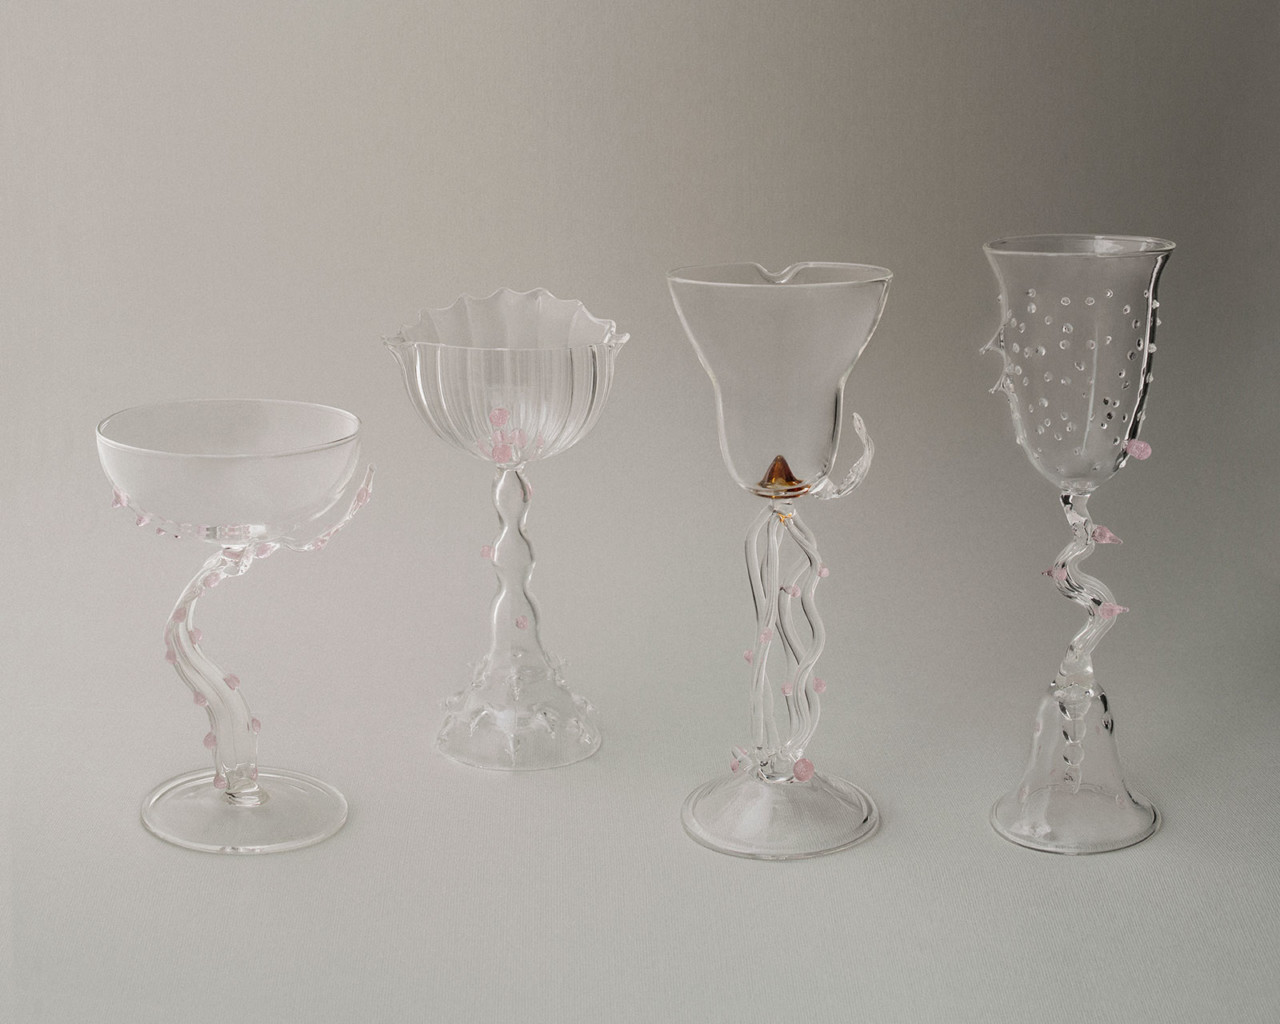 Valentina Cameranesi Sgroi ETERE glass pieces